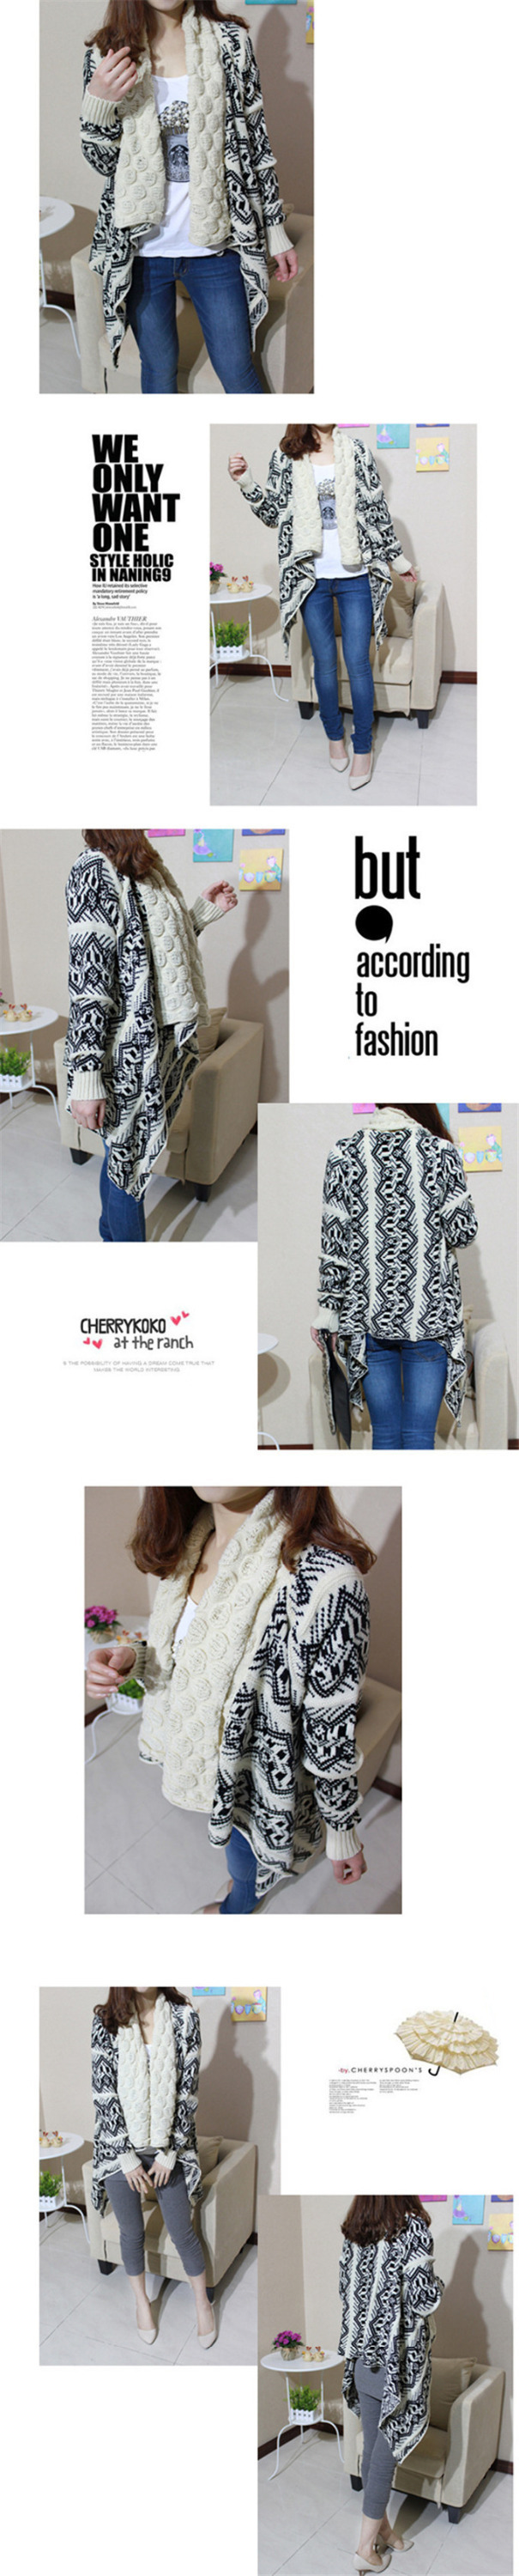 Made in China Women Oversized Knitted Sweater Long Sleeve Outwear Cardigan Sweater